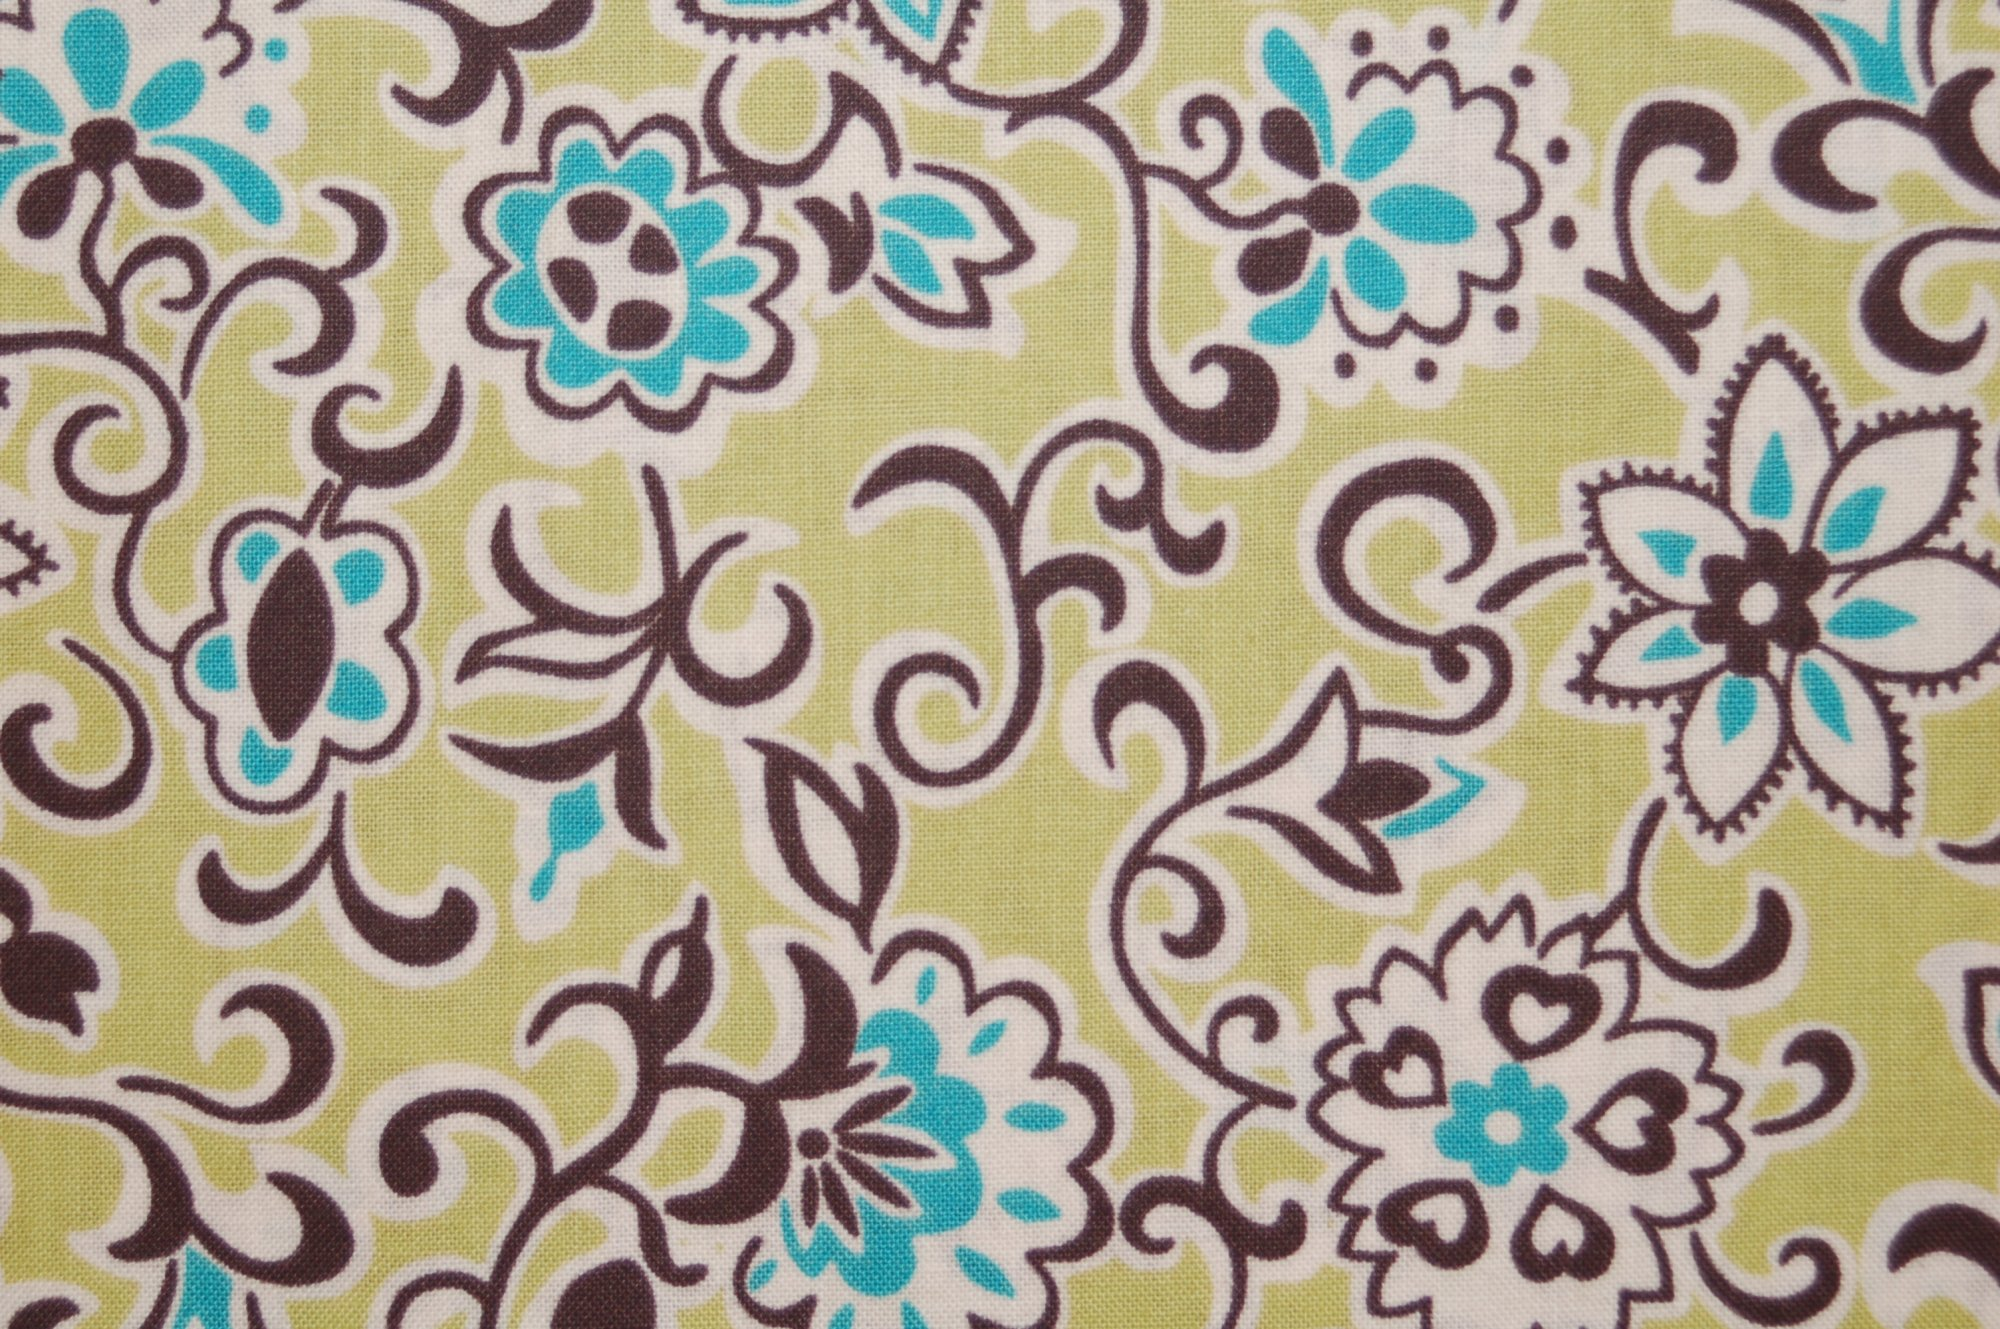 Ansonia - Floral Paisley from Denyse Schmidt for Free Spirit